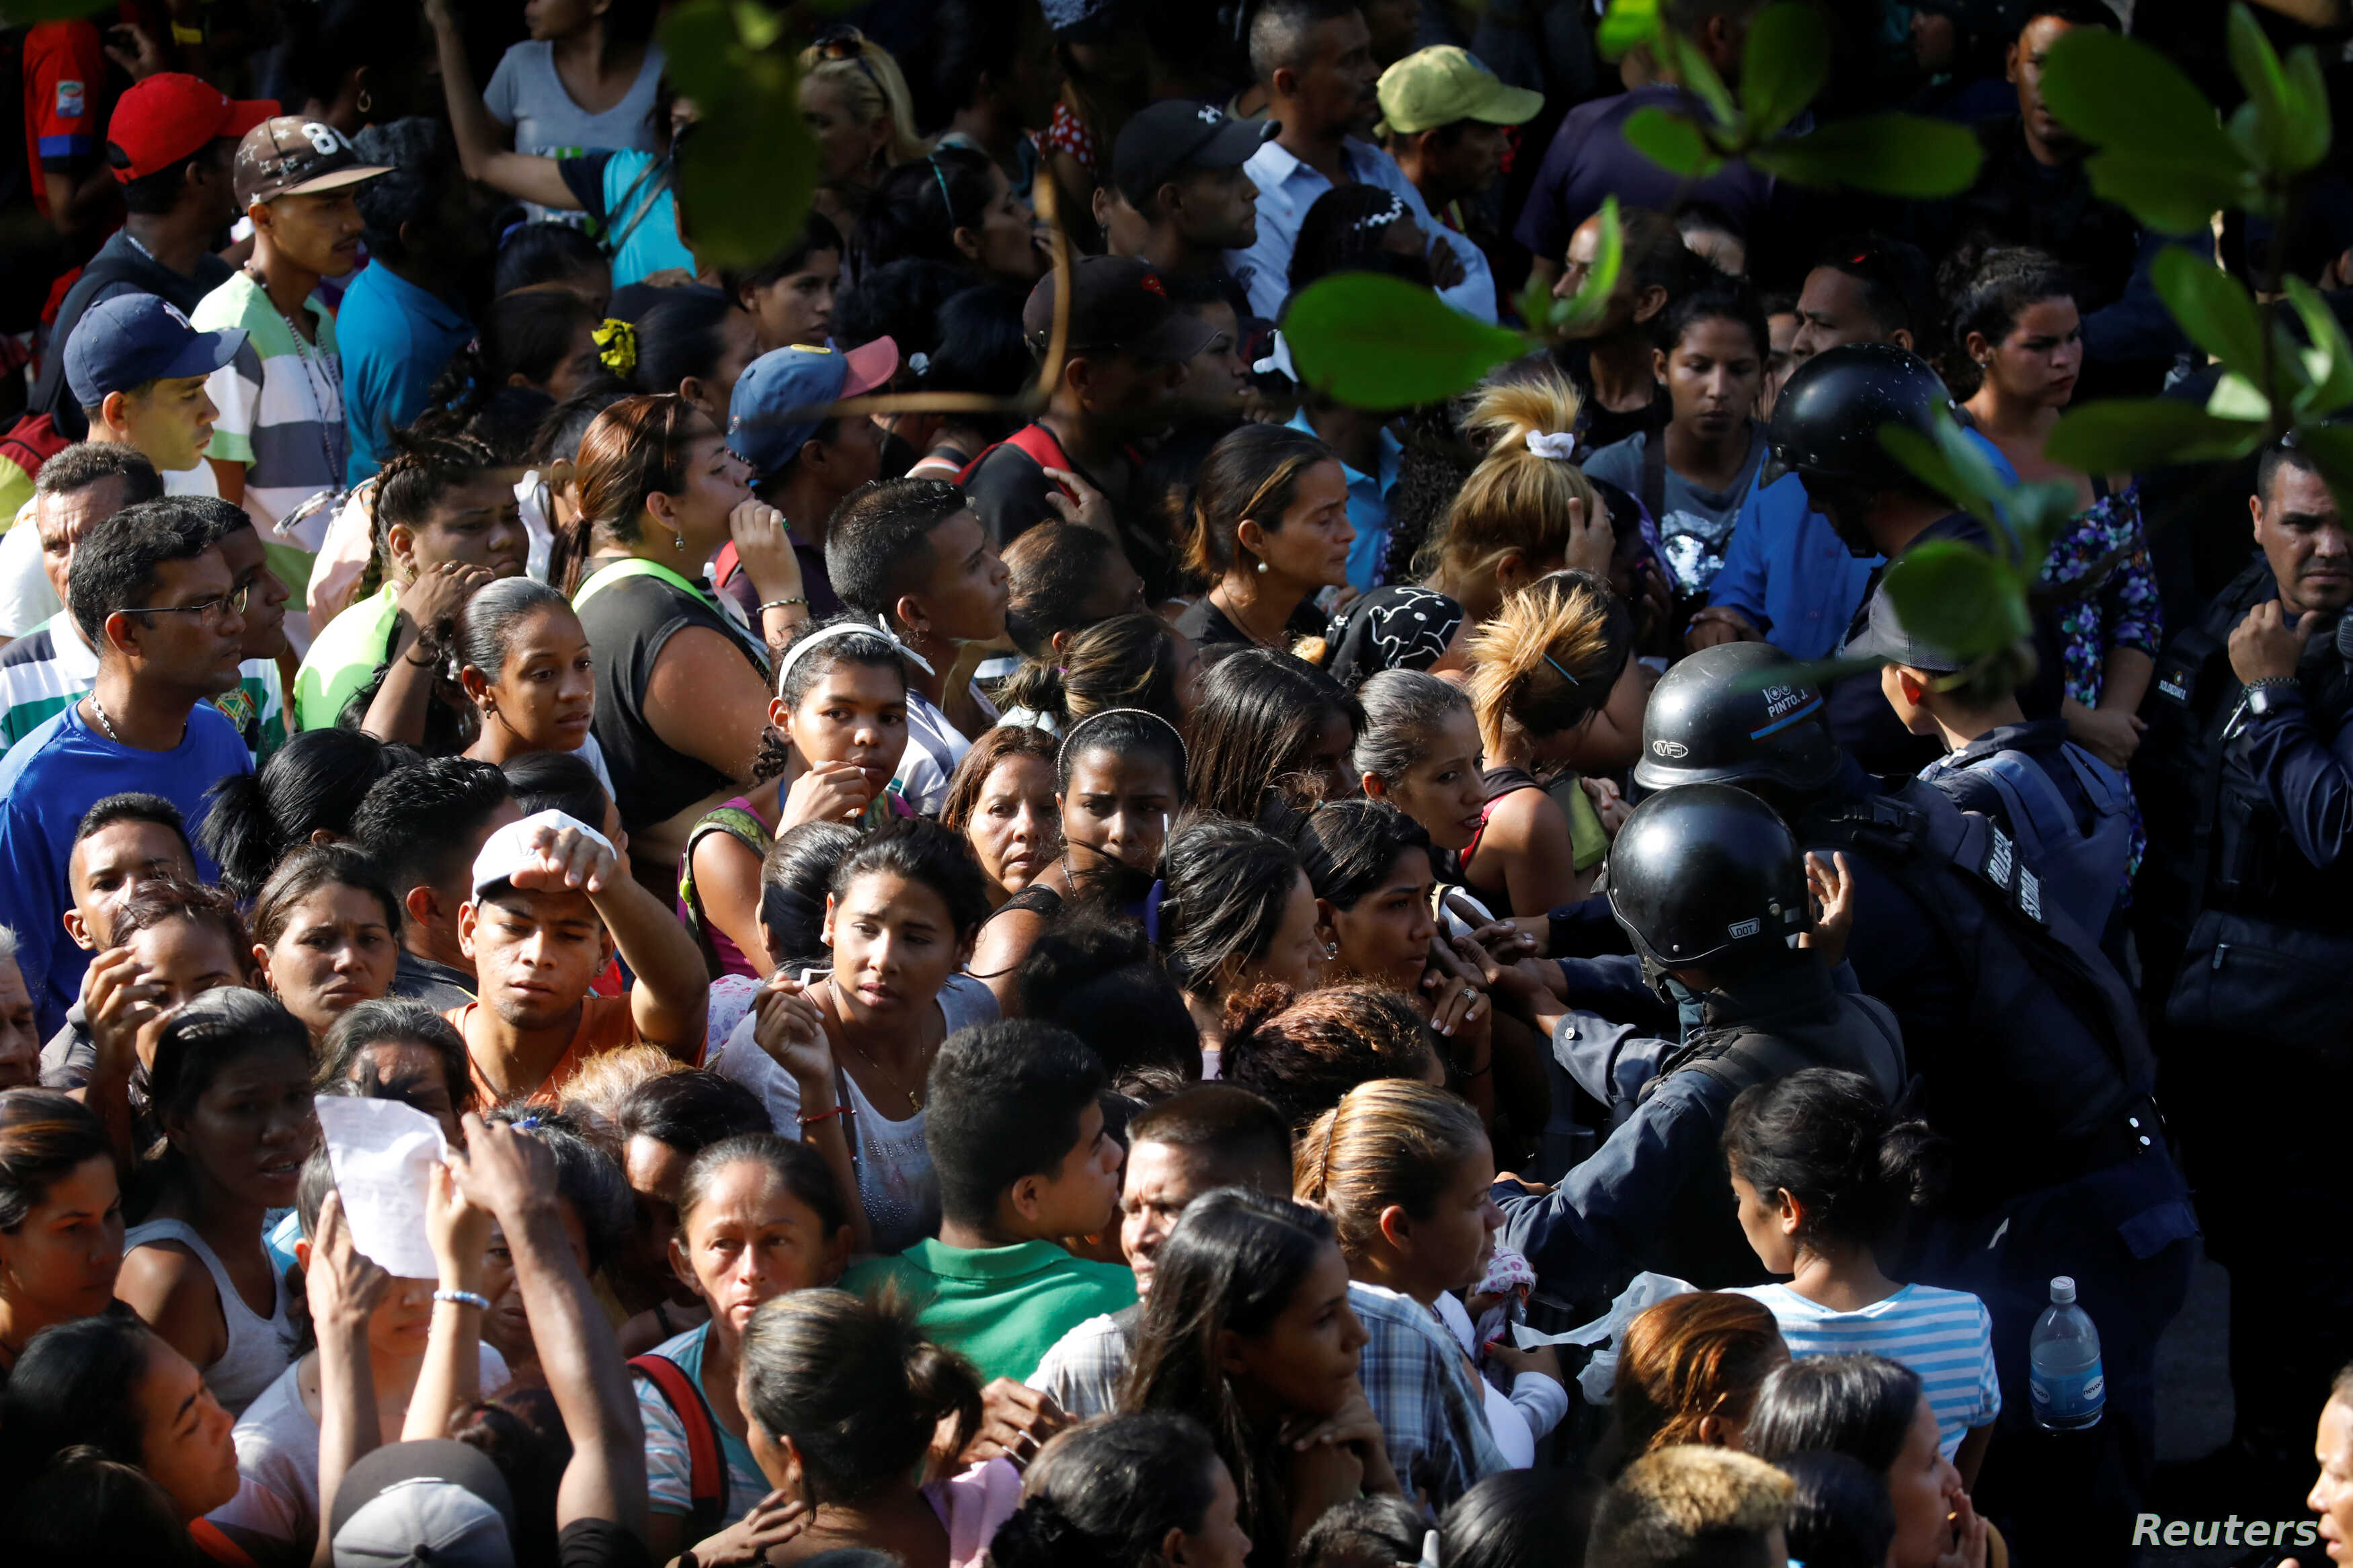 Relatives of inmates at the General Command of the Carabobo Police wait outside the prison in Valencia, Venezuela March 28, 2018.